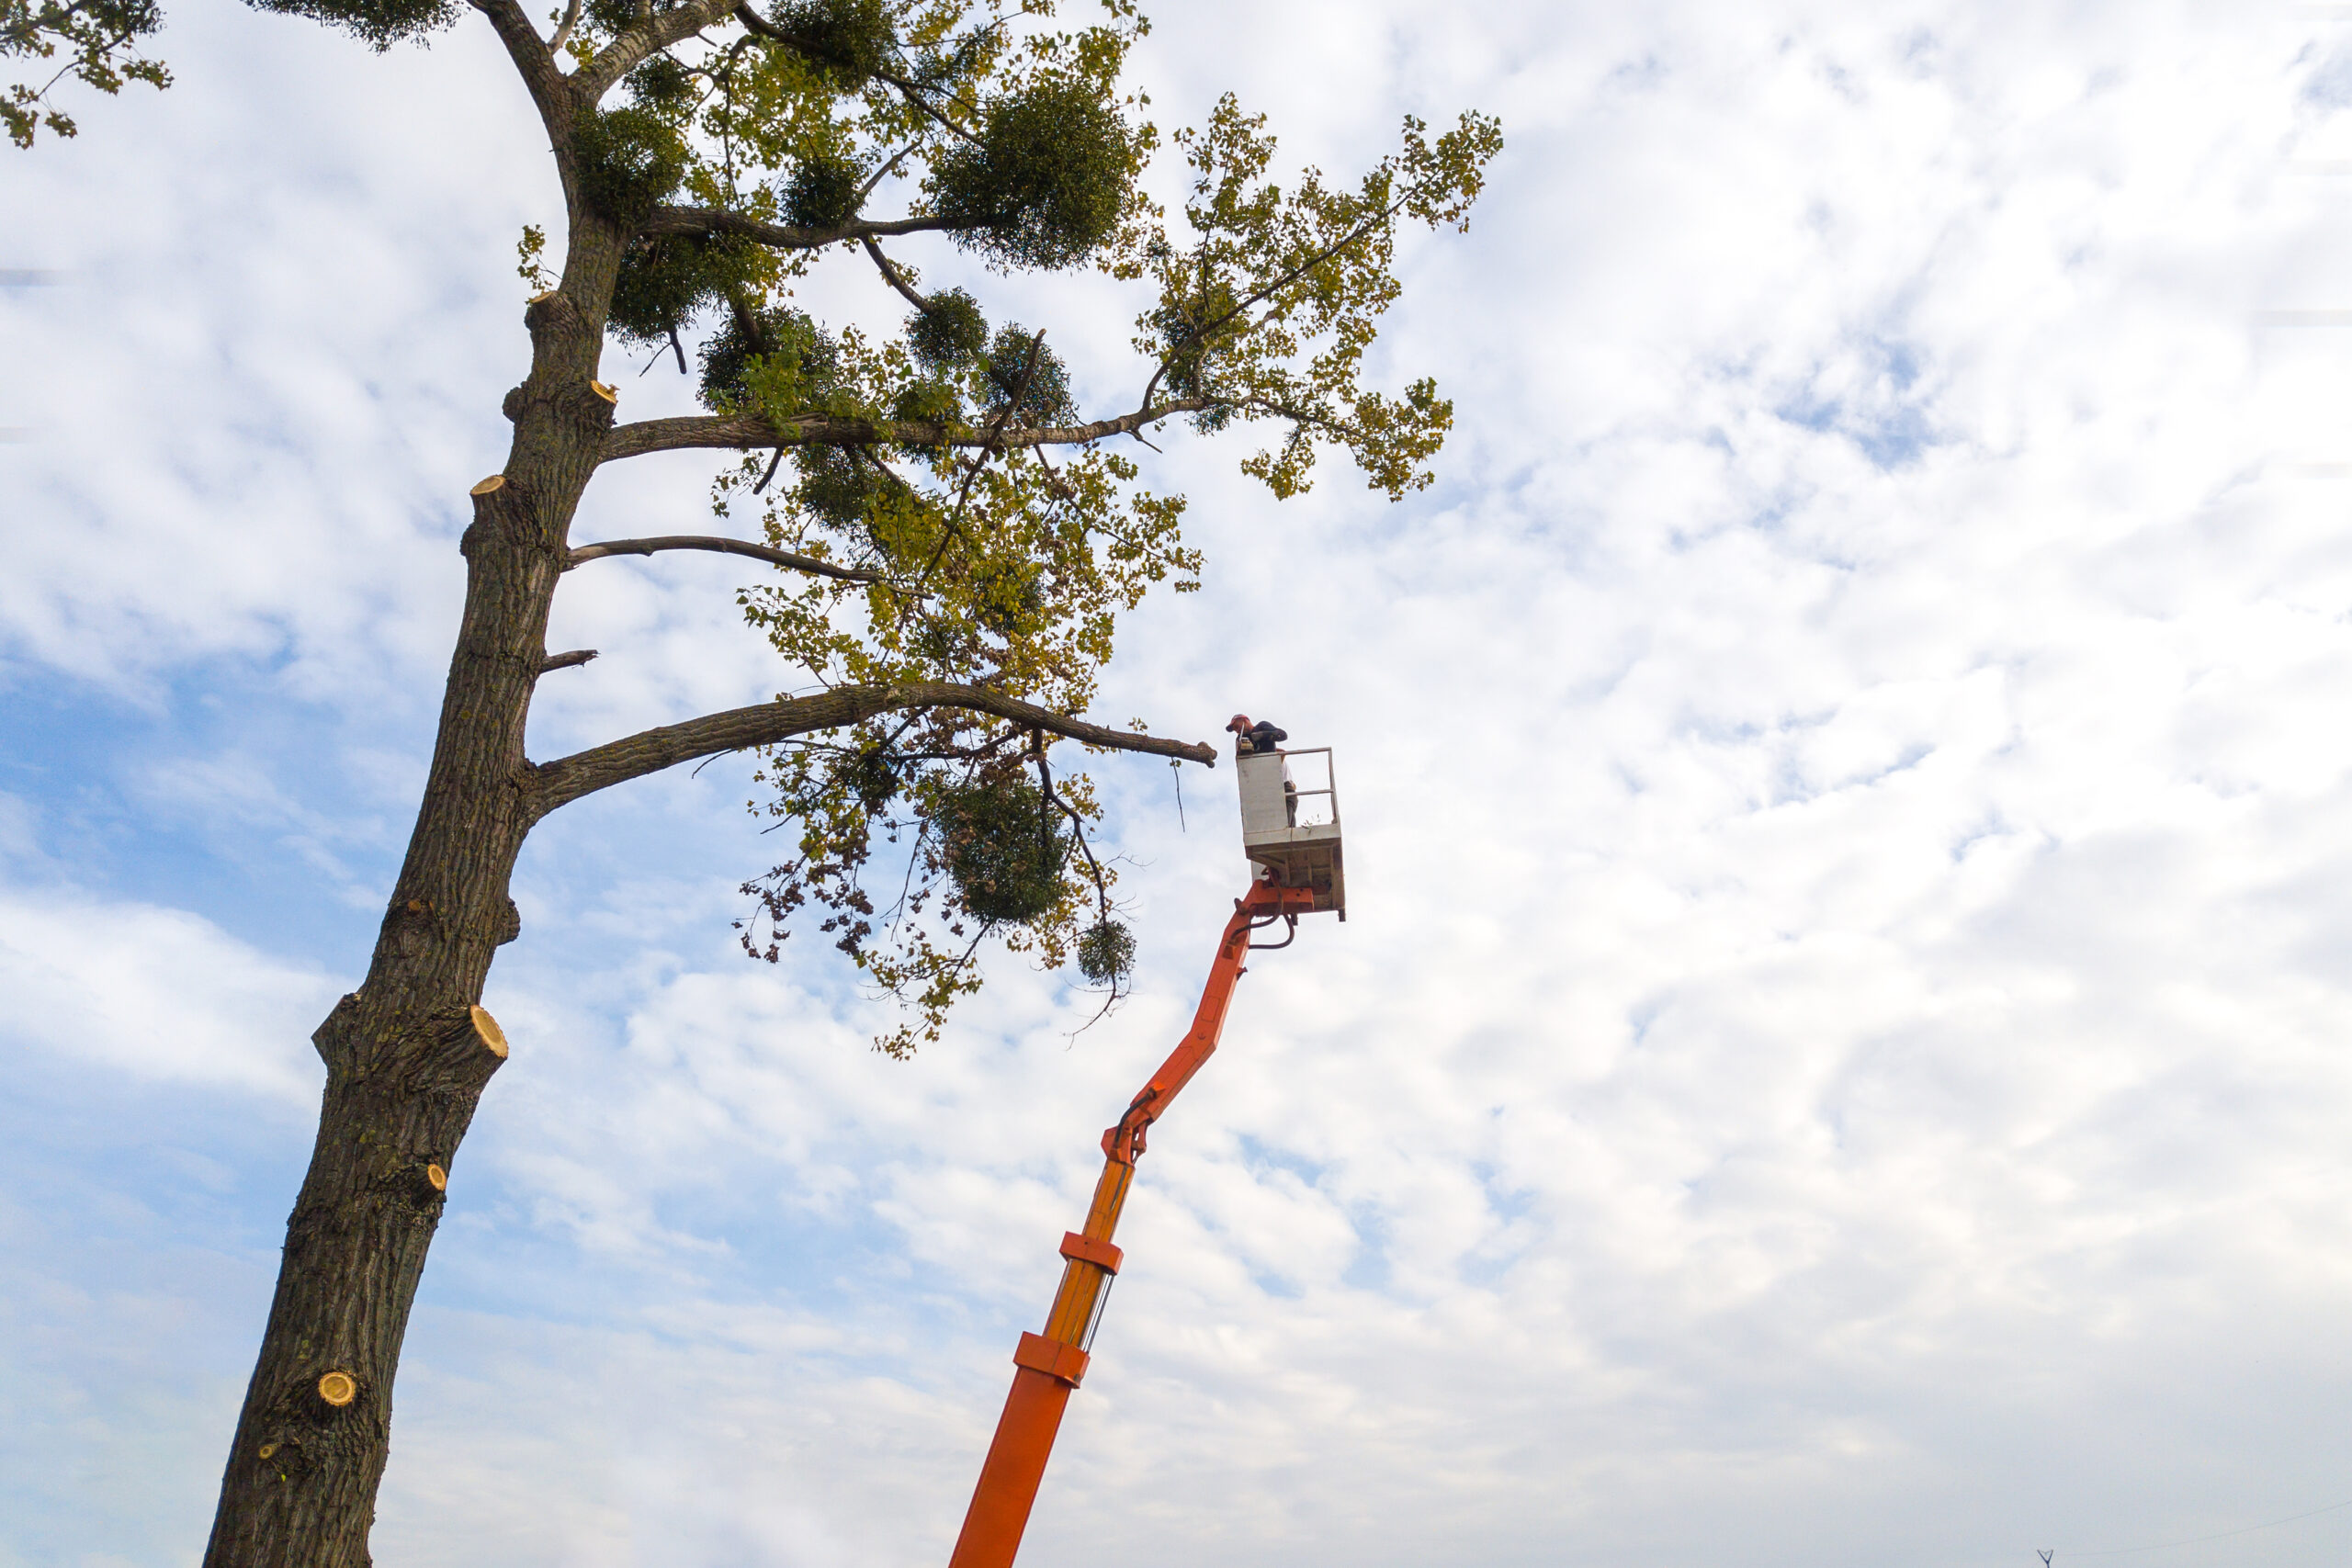 Two service workers cutting down big tree branches with chainsaw